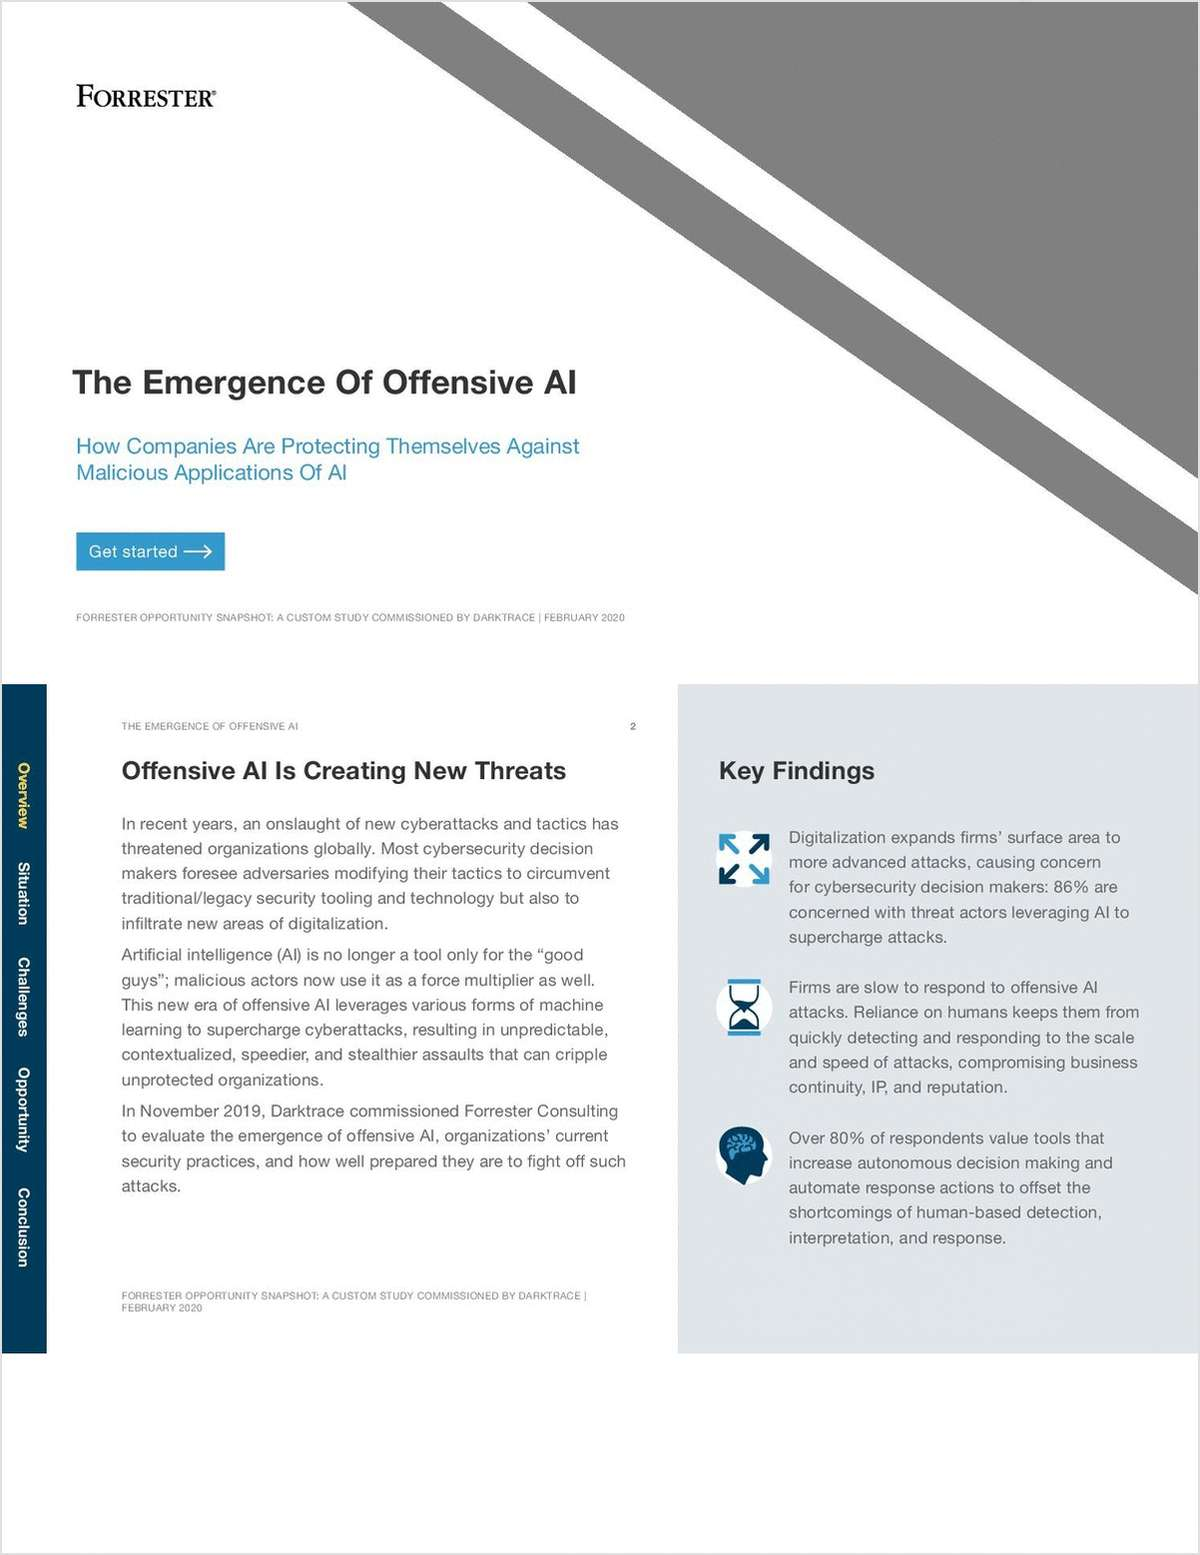 The Forrester Threat Report: The Emergence of Offensive AI